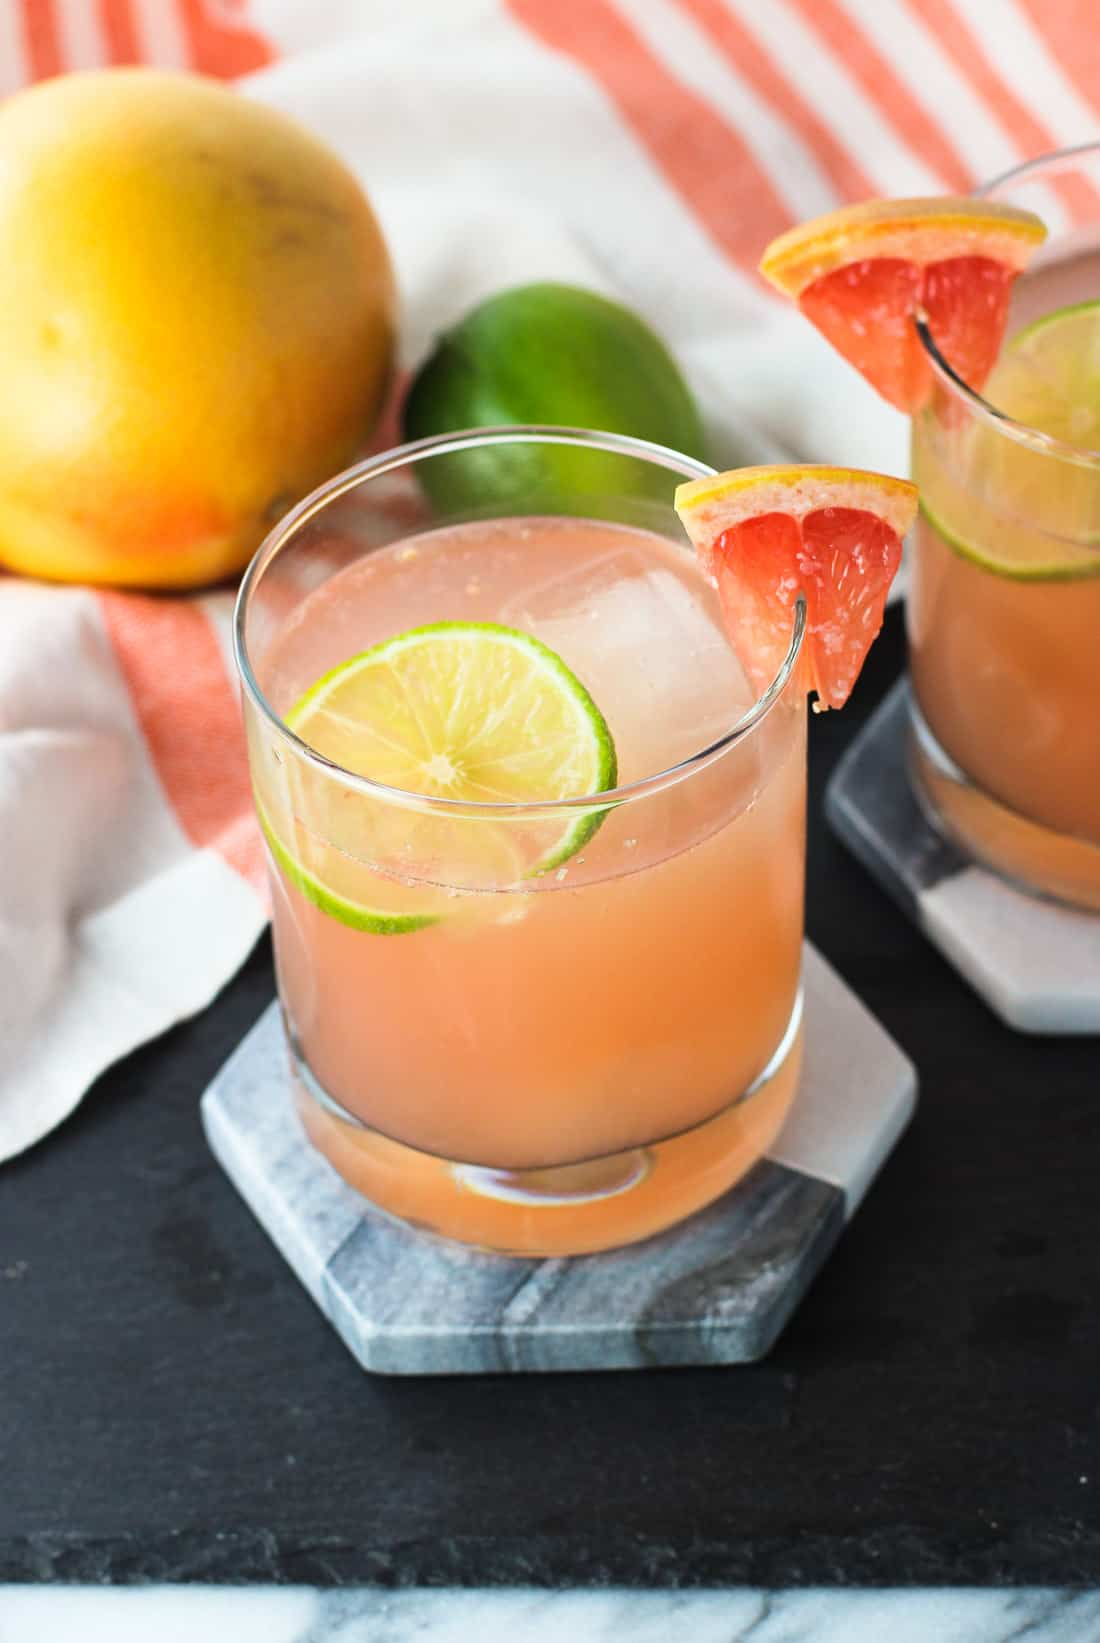 A champagne paloma is a tequila-based cocktail with fresh grapefruit and lime juices, as well as a glug-glug of champagne. This cocktail is on the tart side with a slight fizziness from the champagne.